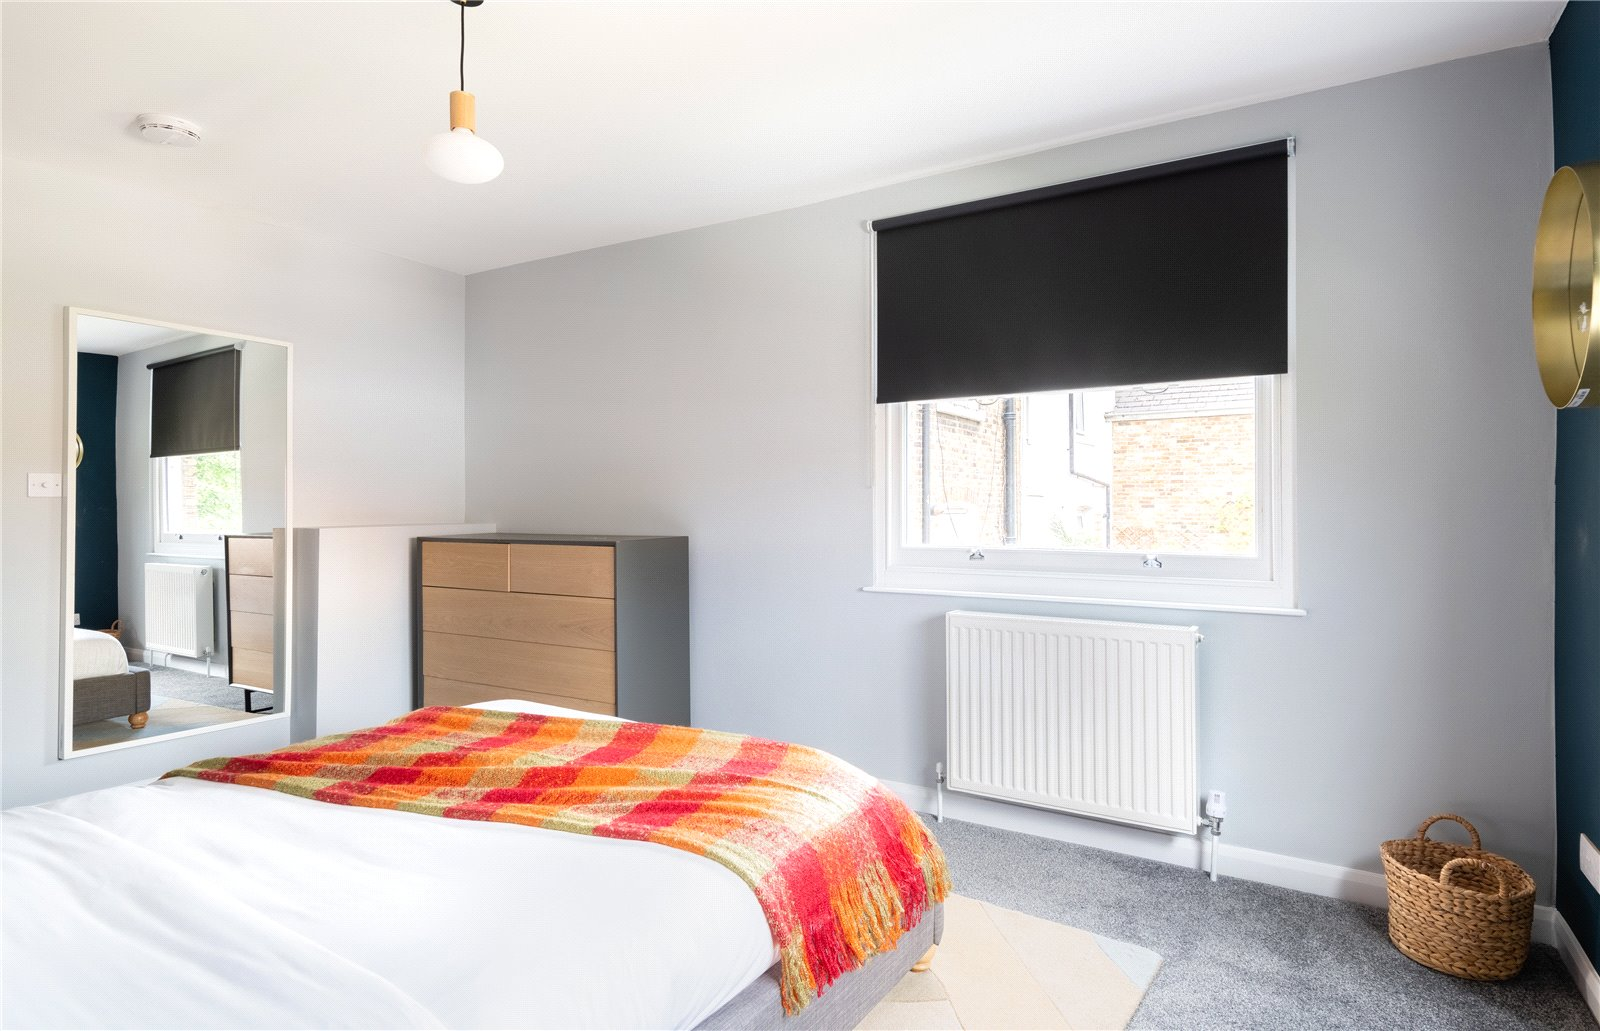 3 bed apartment for sale in Kentish Town, NW5 4DA 5